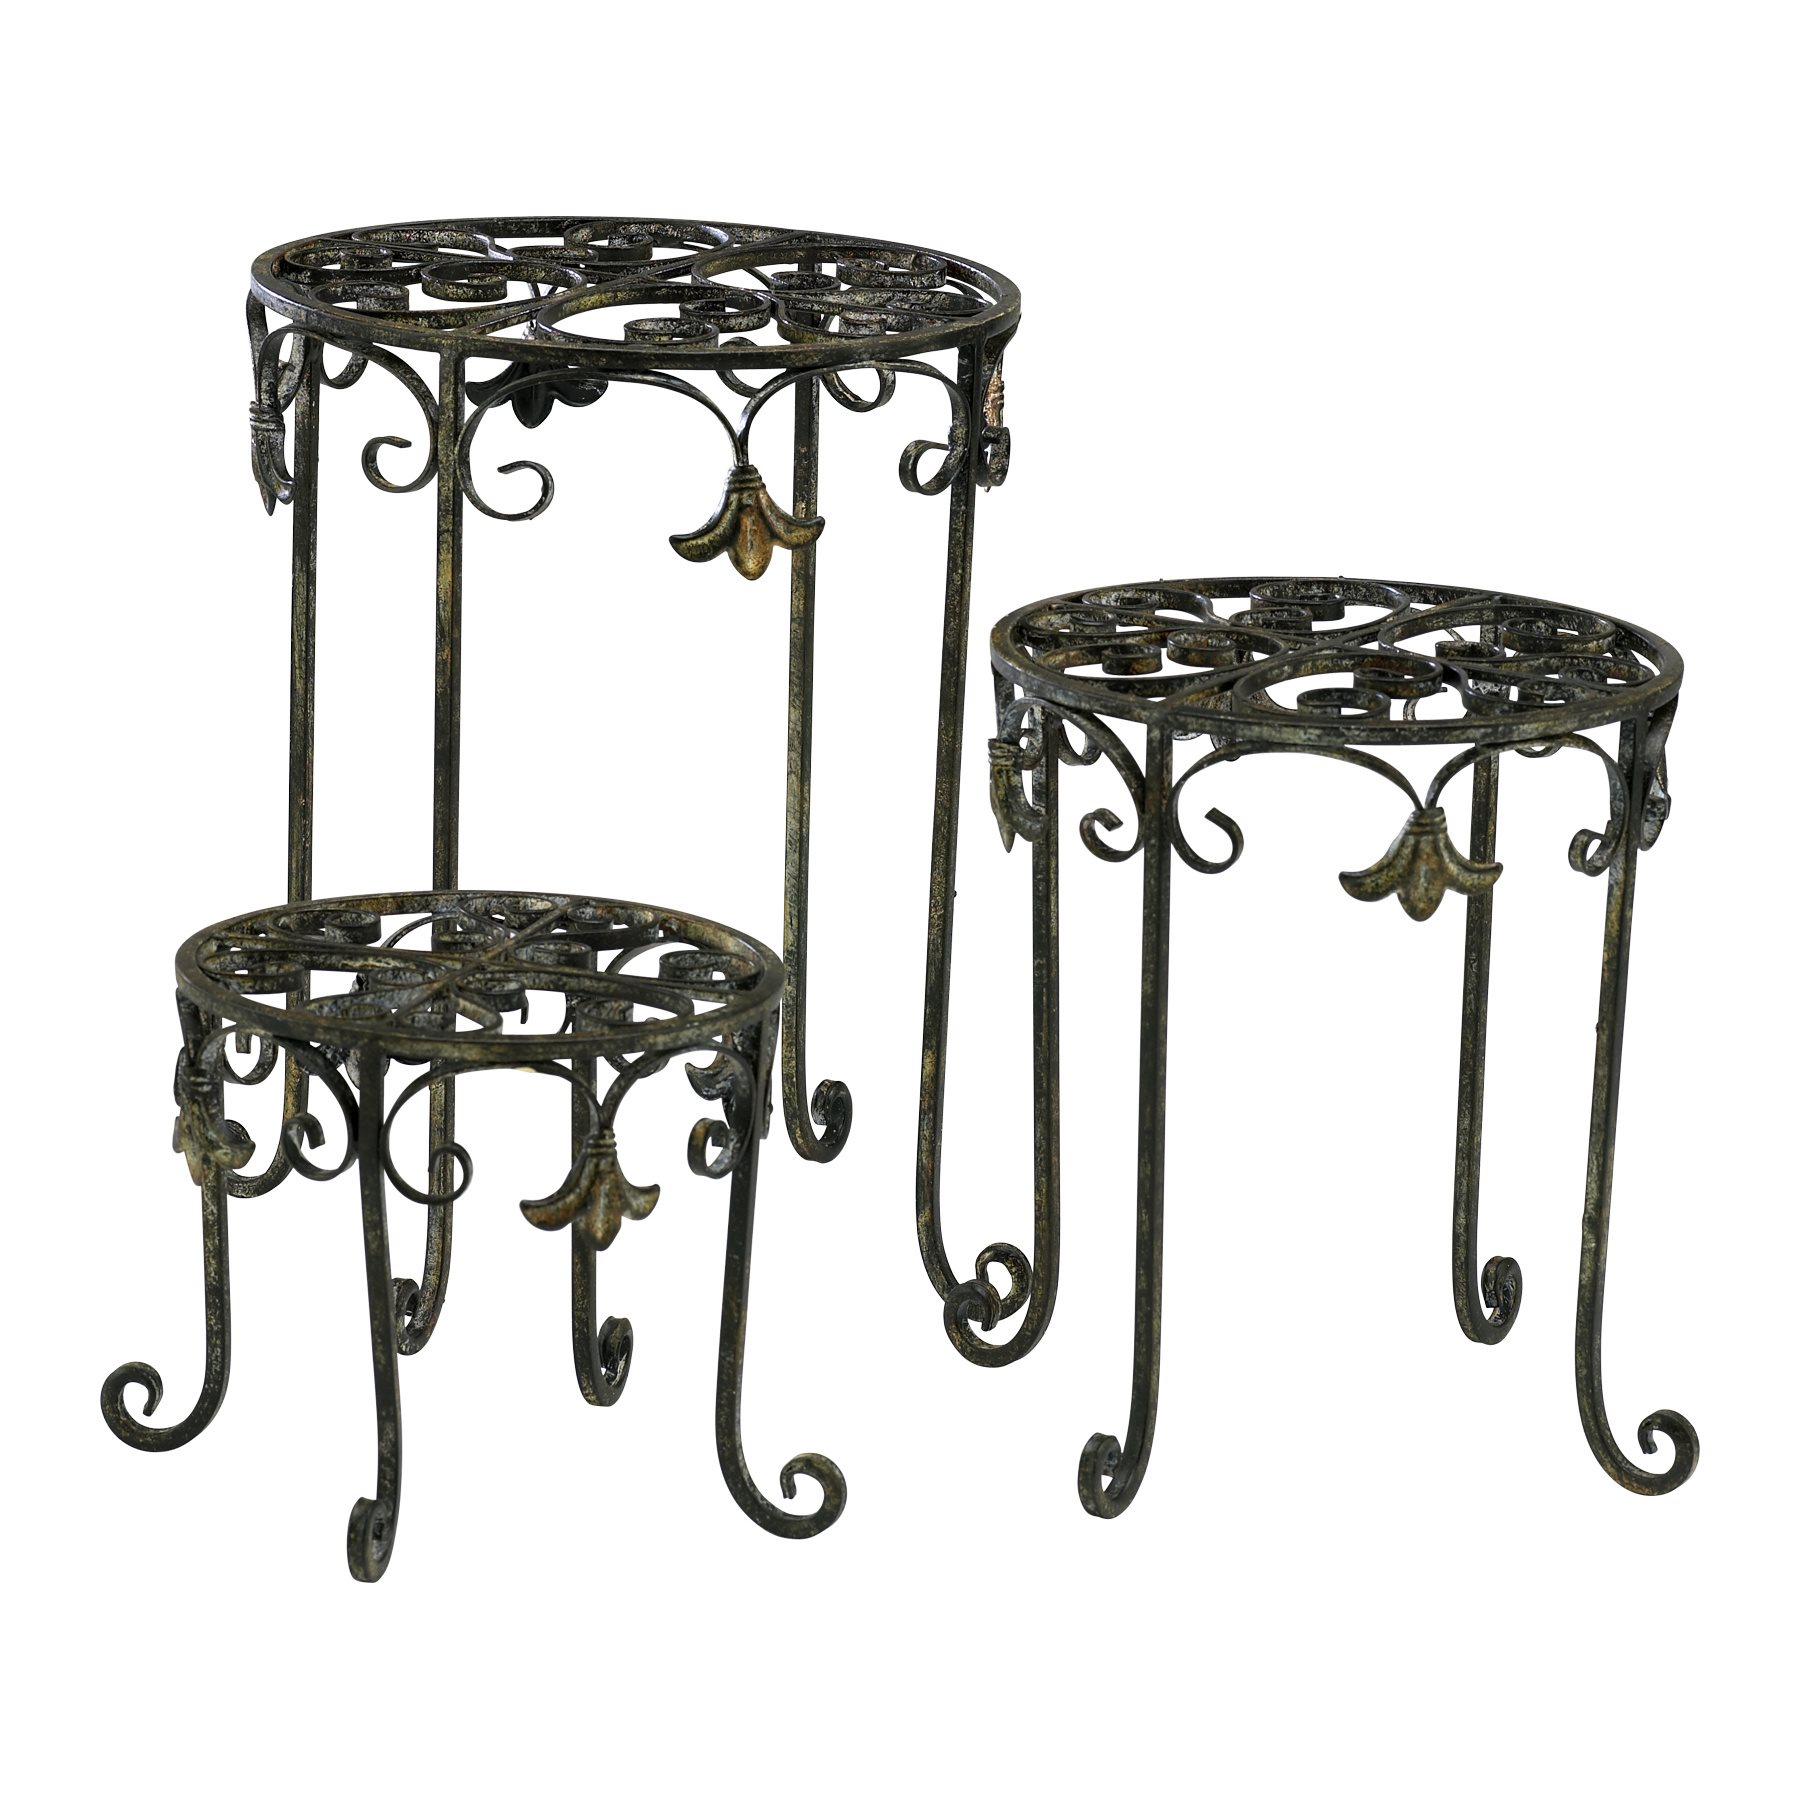 Cyan Design 02783 Filigree Iron Stands CN-02783